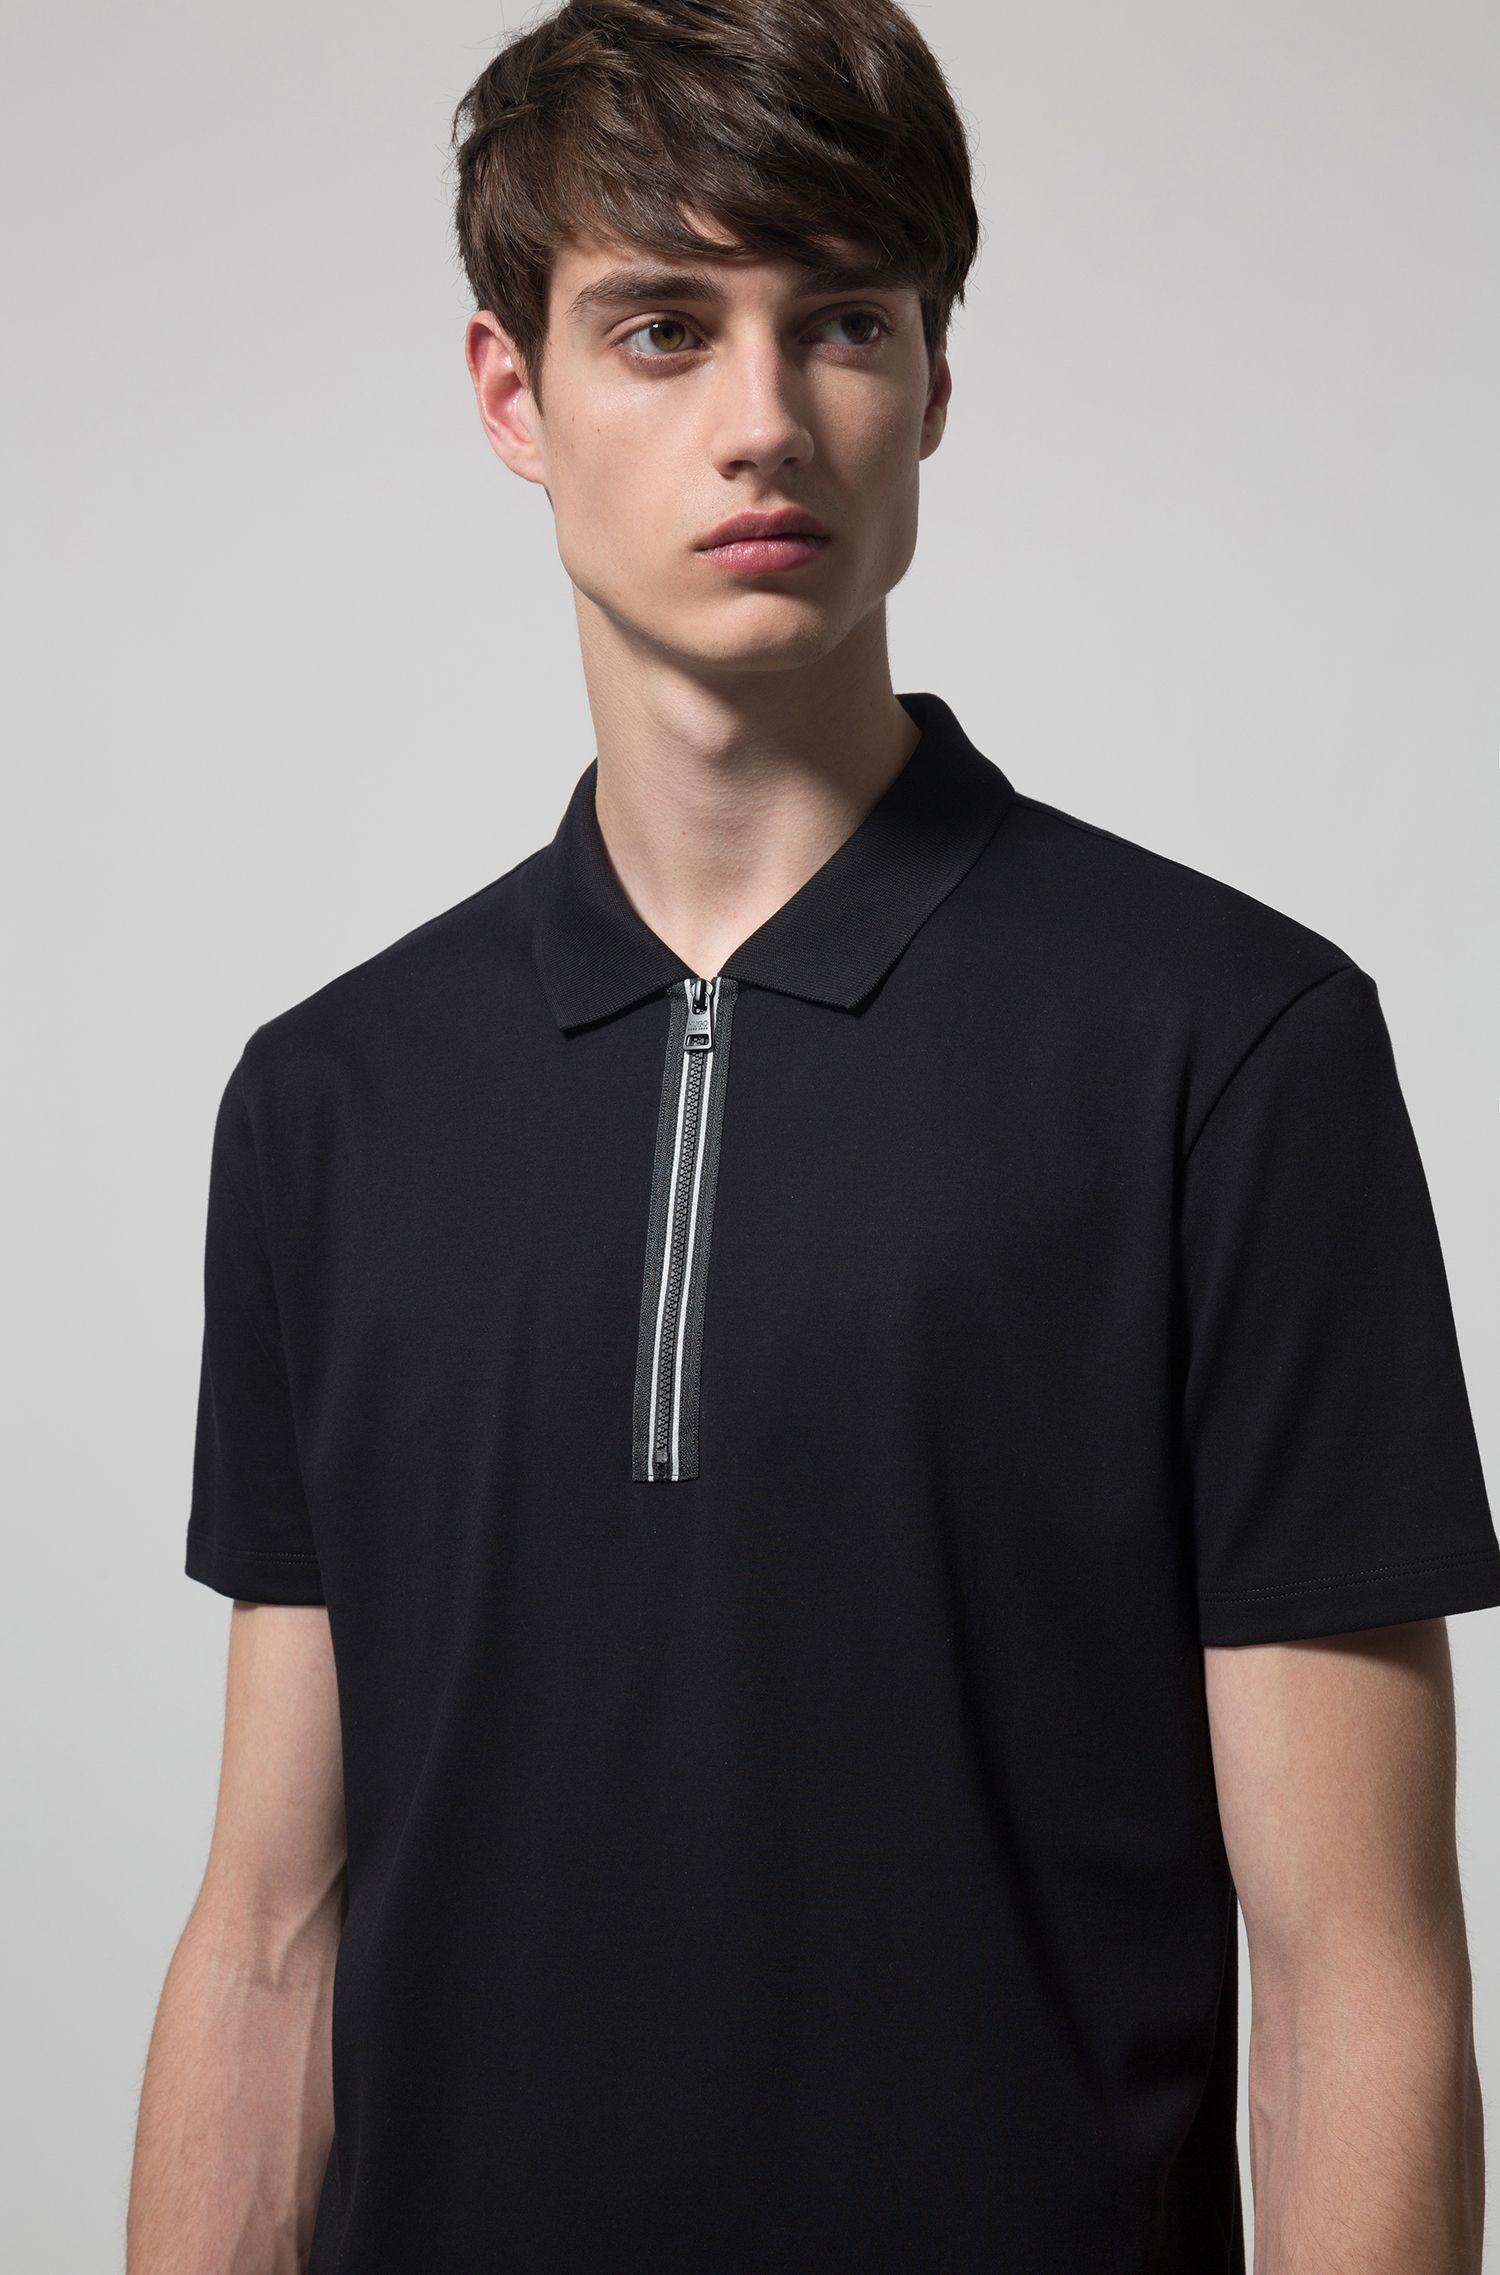 Polo shirt in interlock cotton with contrast zip detail